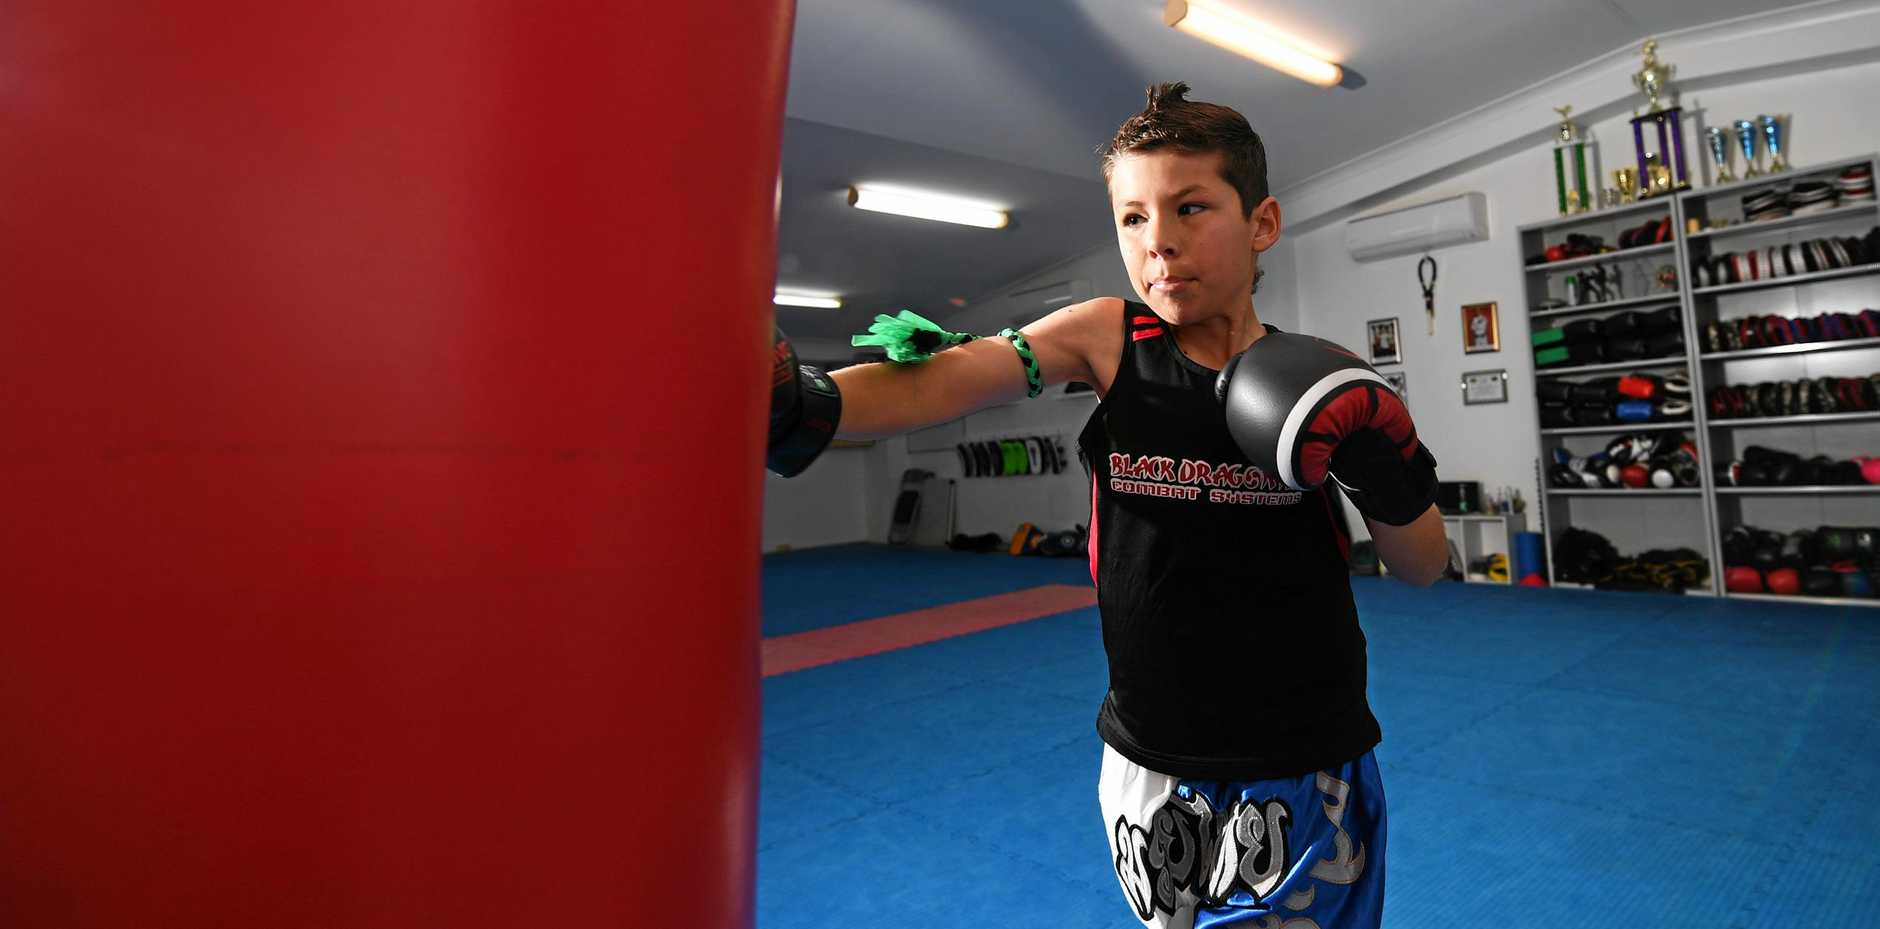 POCKET DYNAMO: Rockhampton muay thai fighter Cooper Ward packs a punch at a training session at Unison Martial Arts.